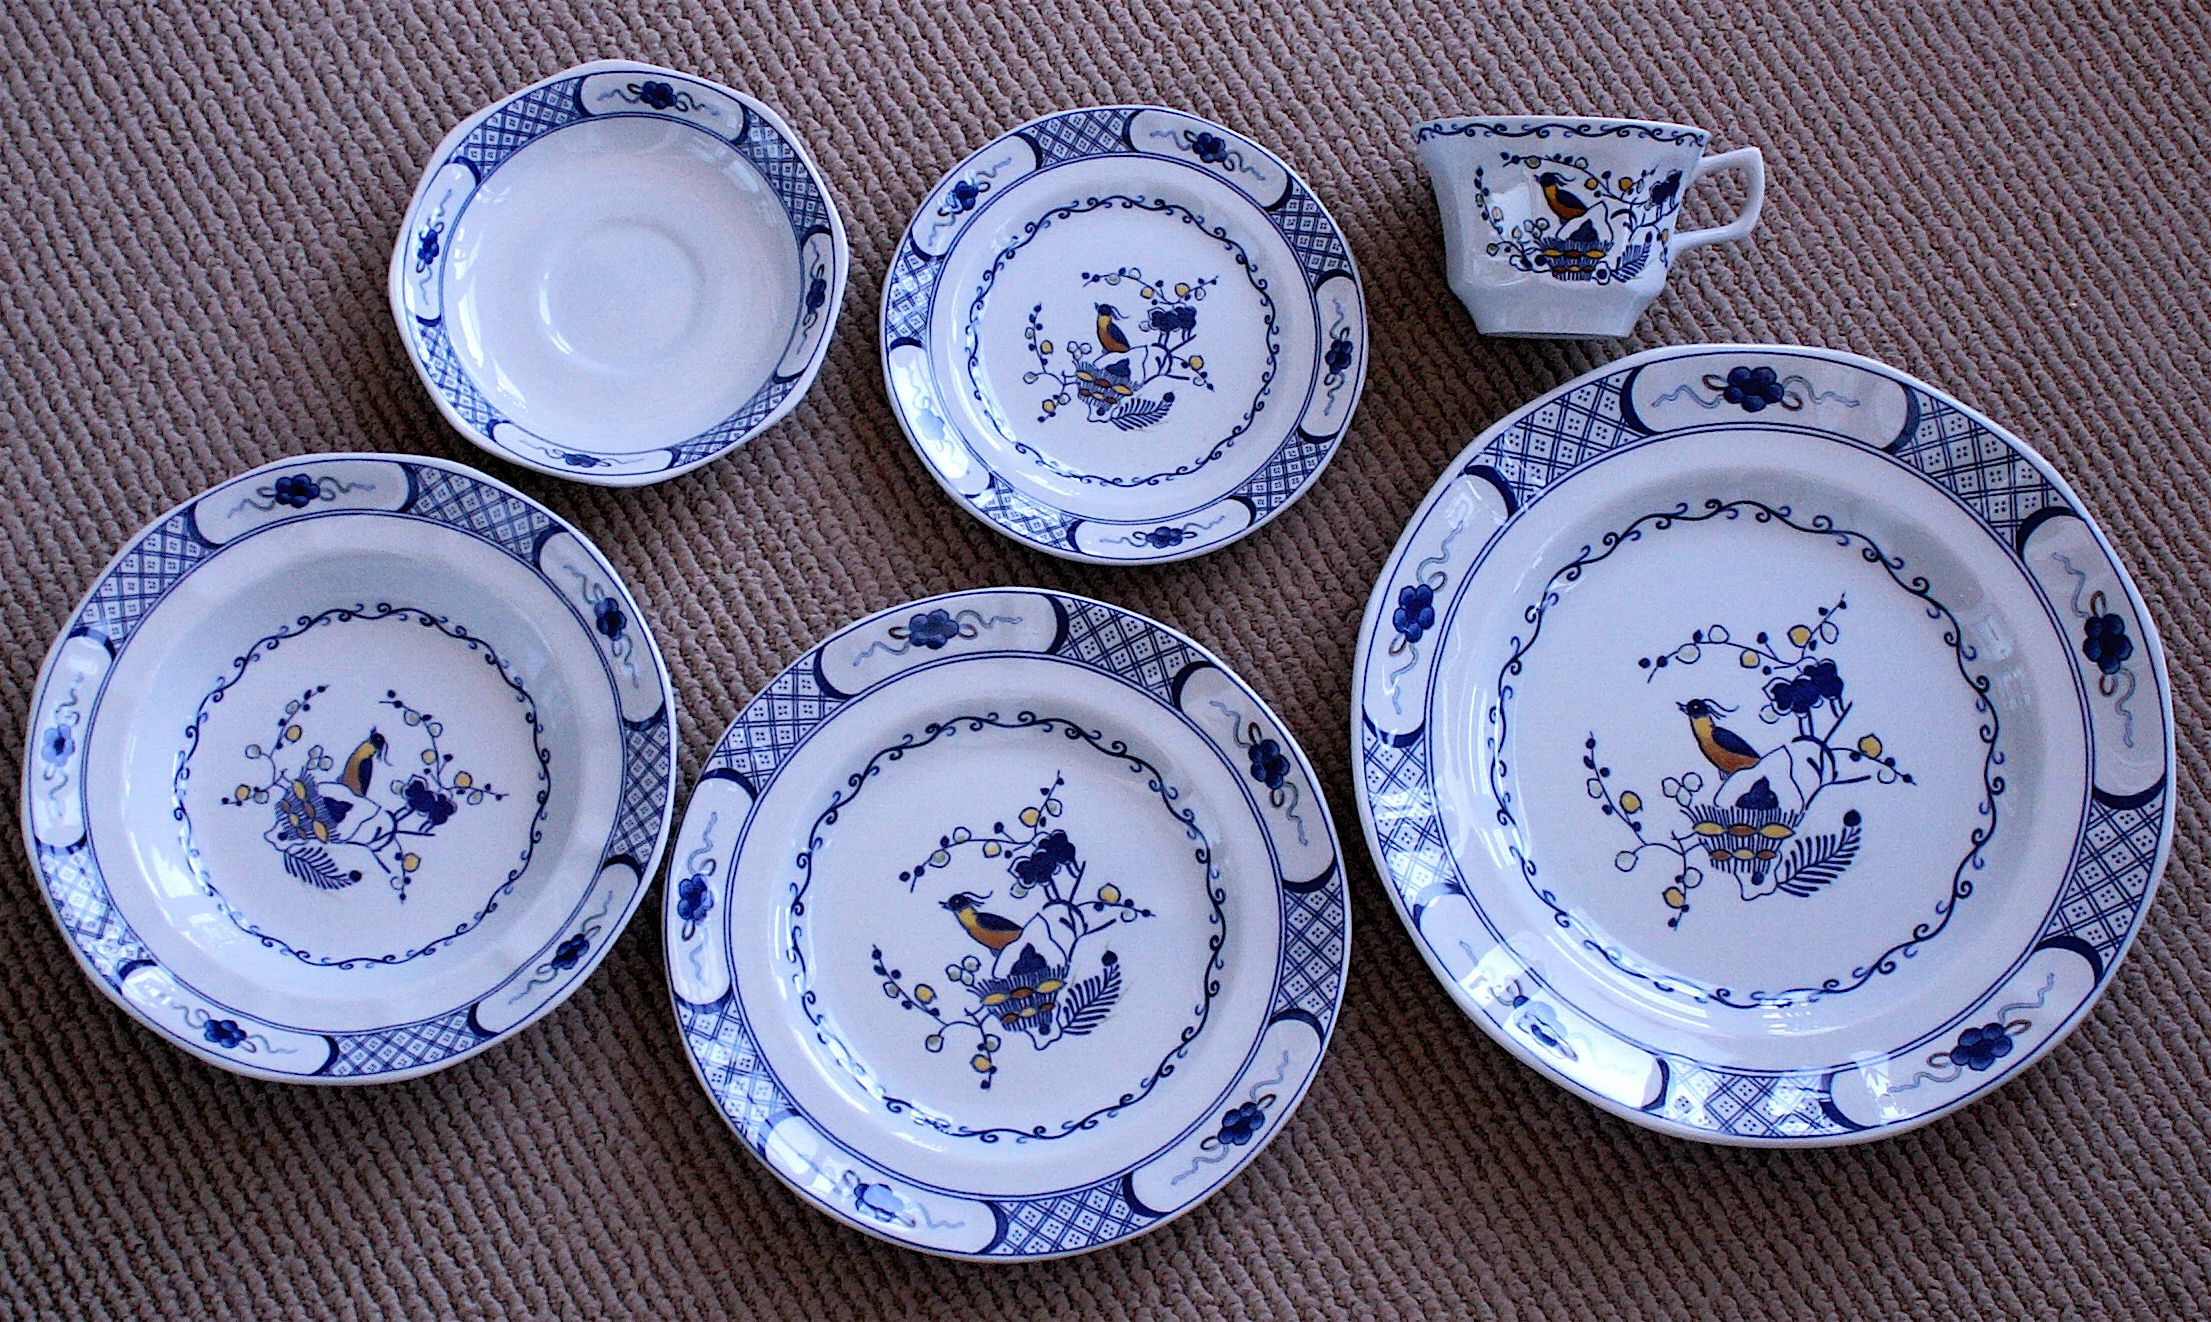 Six piece Wedgwood Volendam place settings 12 settings available Pattern discontinued in 1987 Excellent condition! & Six piece Wedgwood Volendam place settings 12 settings available ...